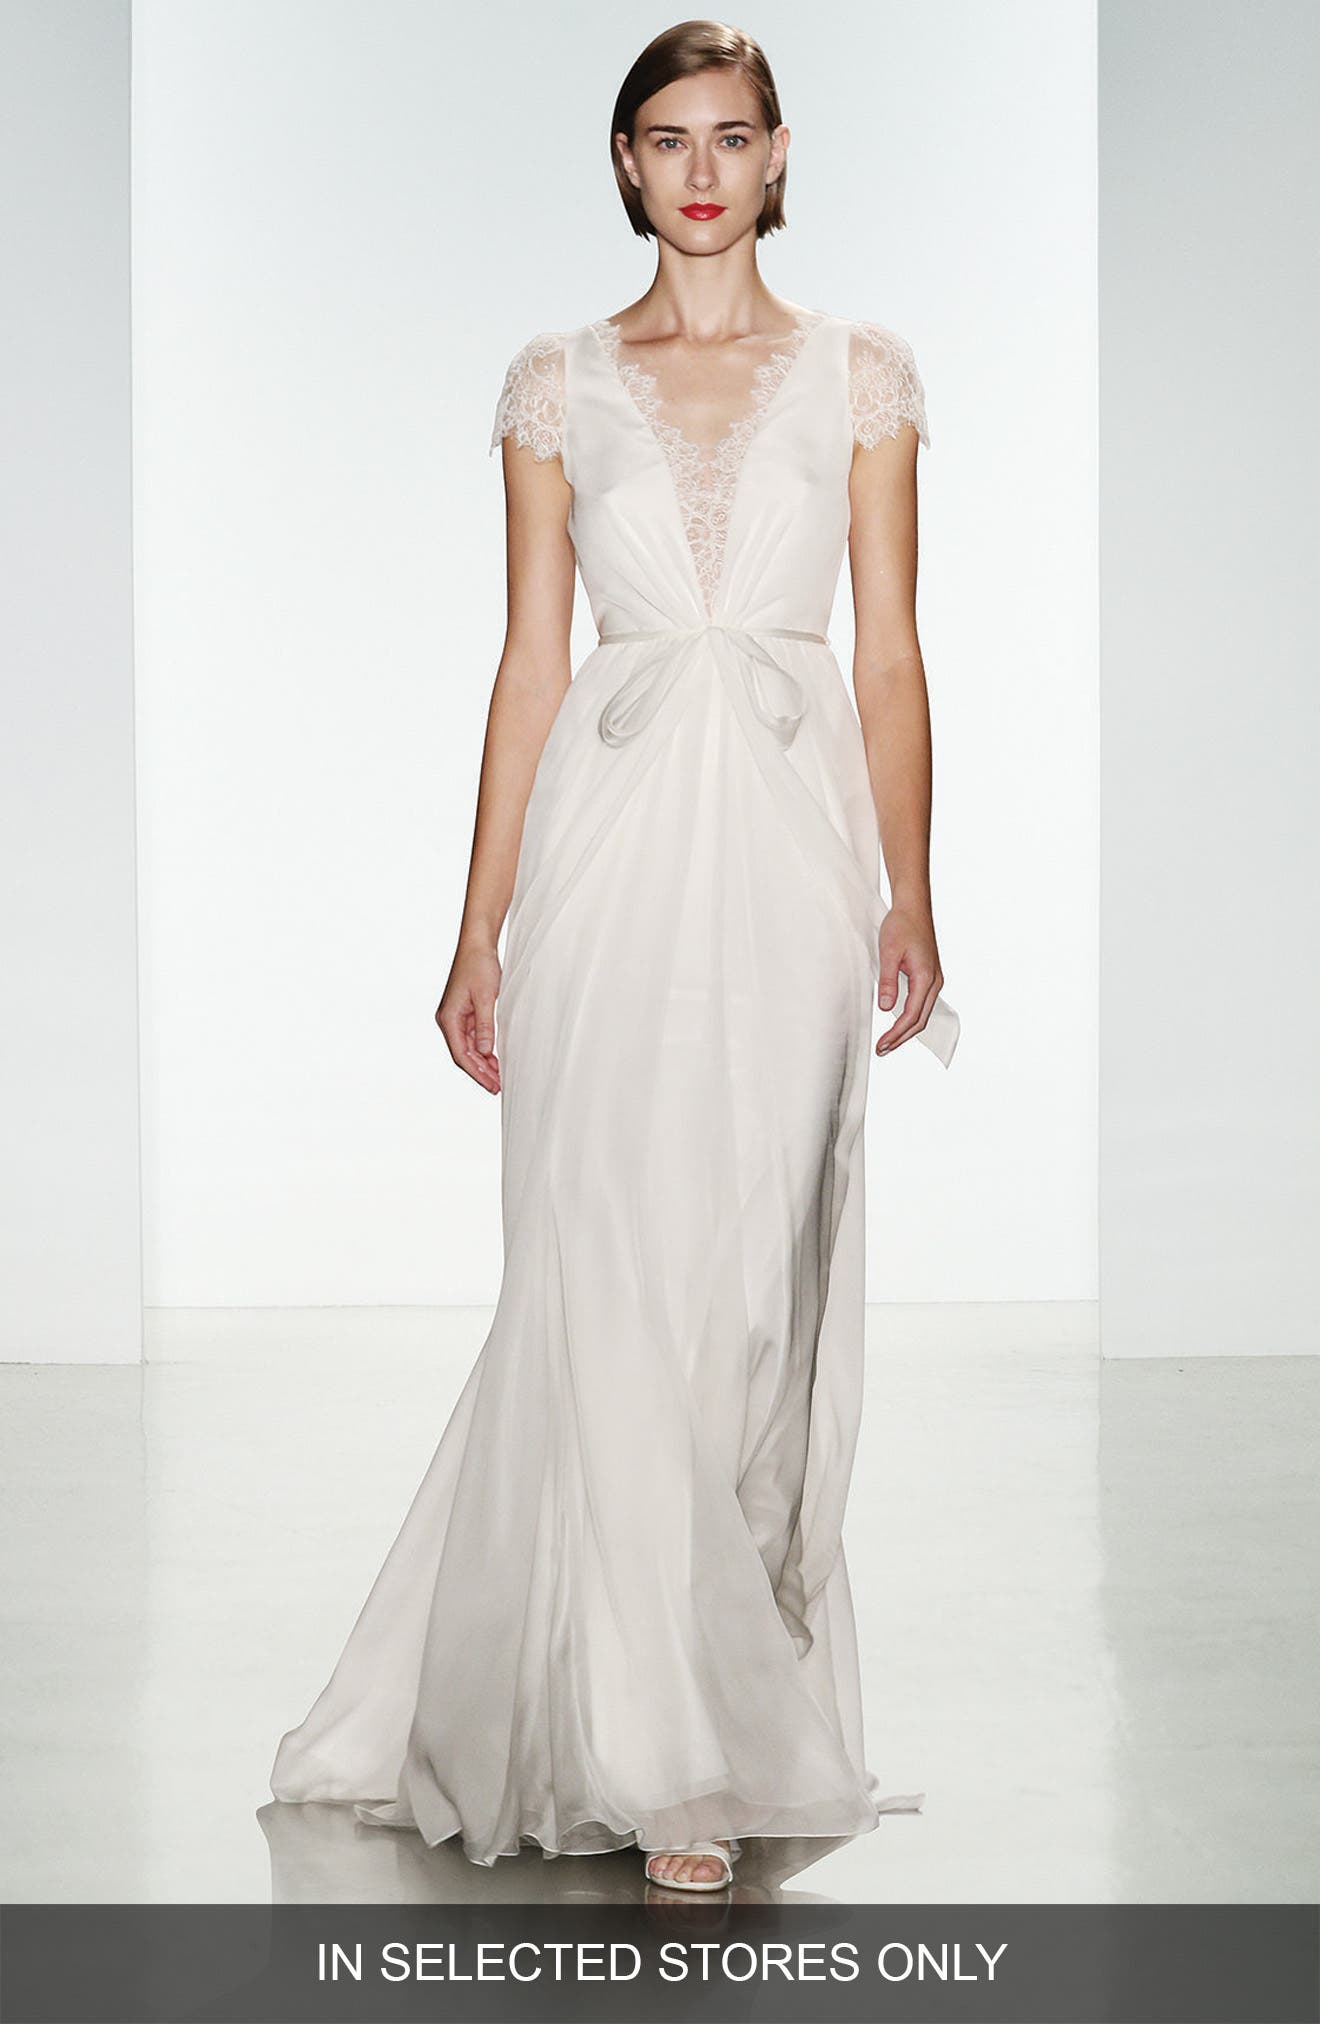 Lainee Silk Chiffon & Lace Cap Sleeve Gown,                             Main thumbnail 1, color,                             Ivory